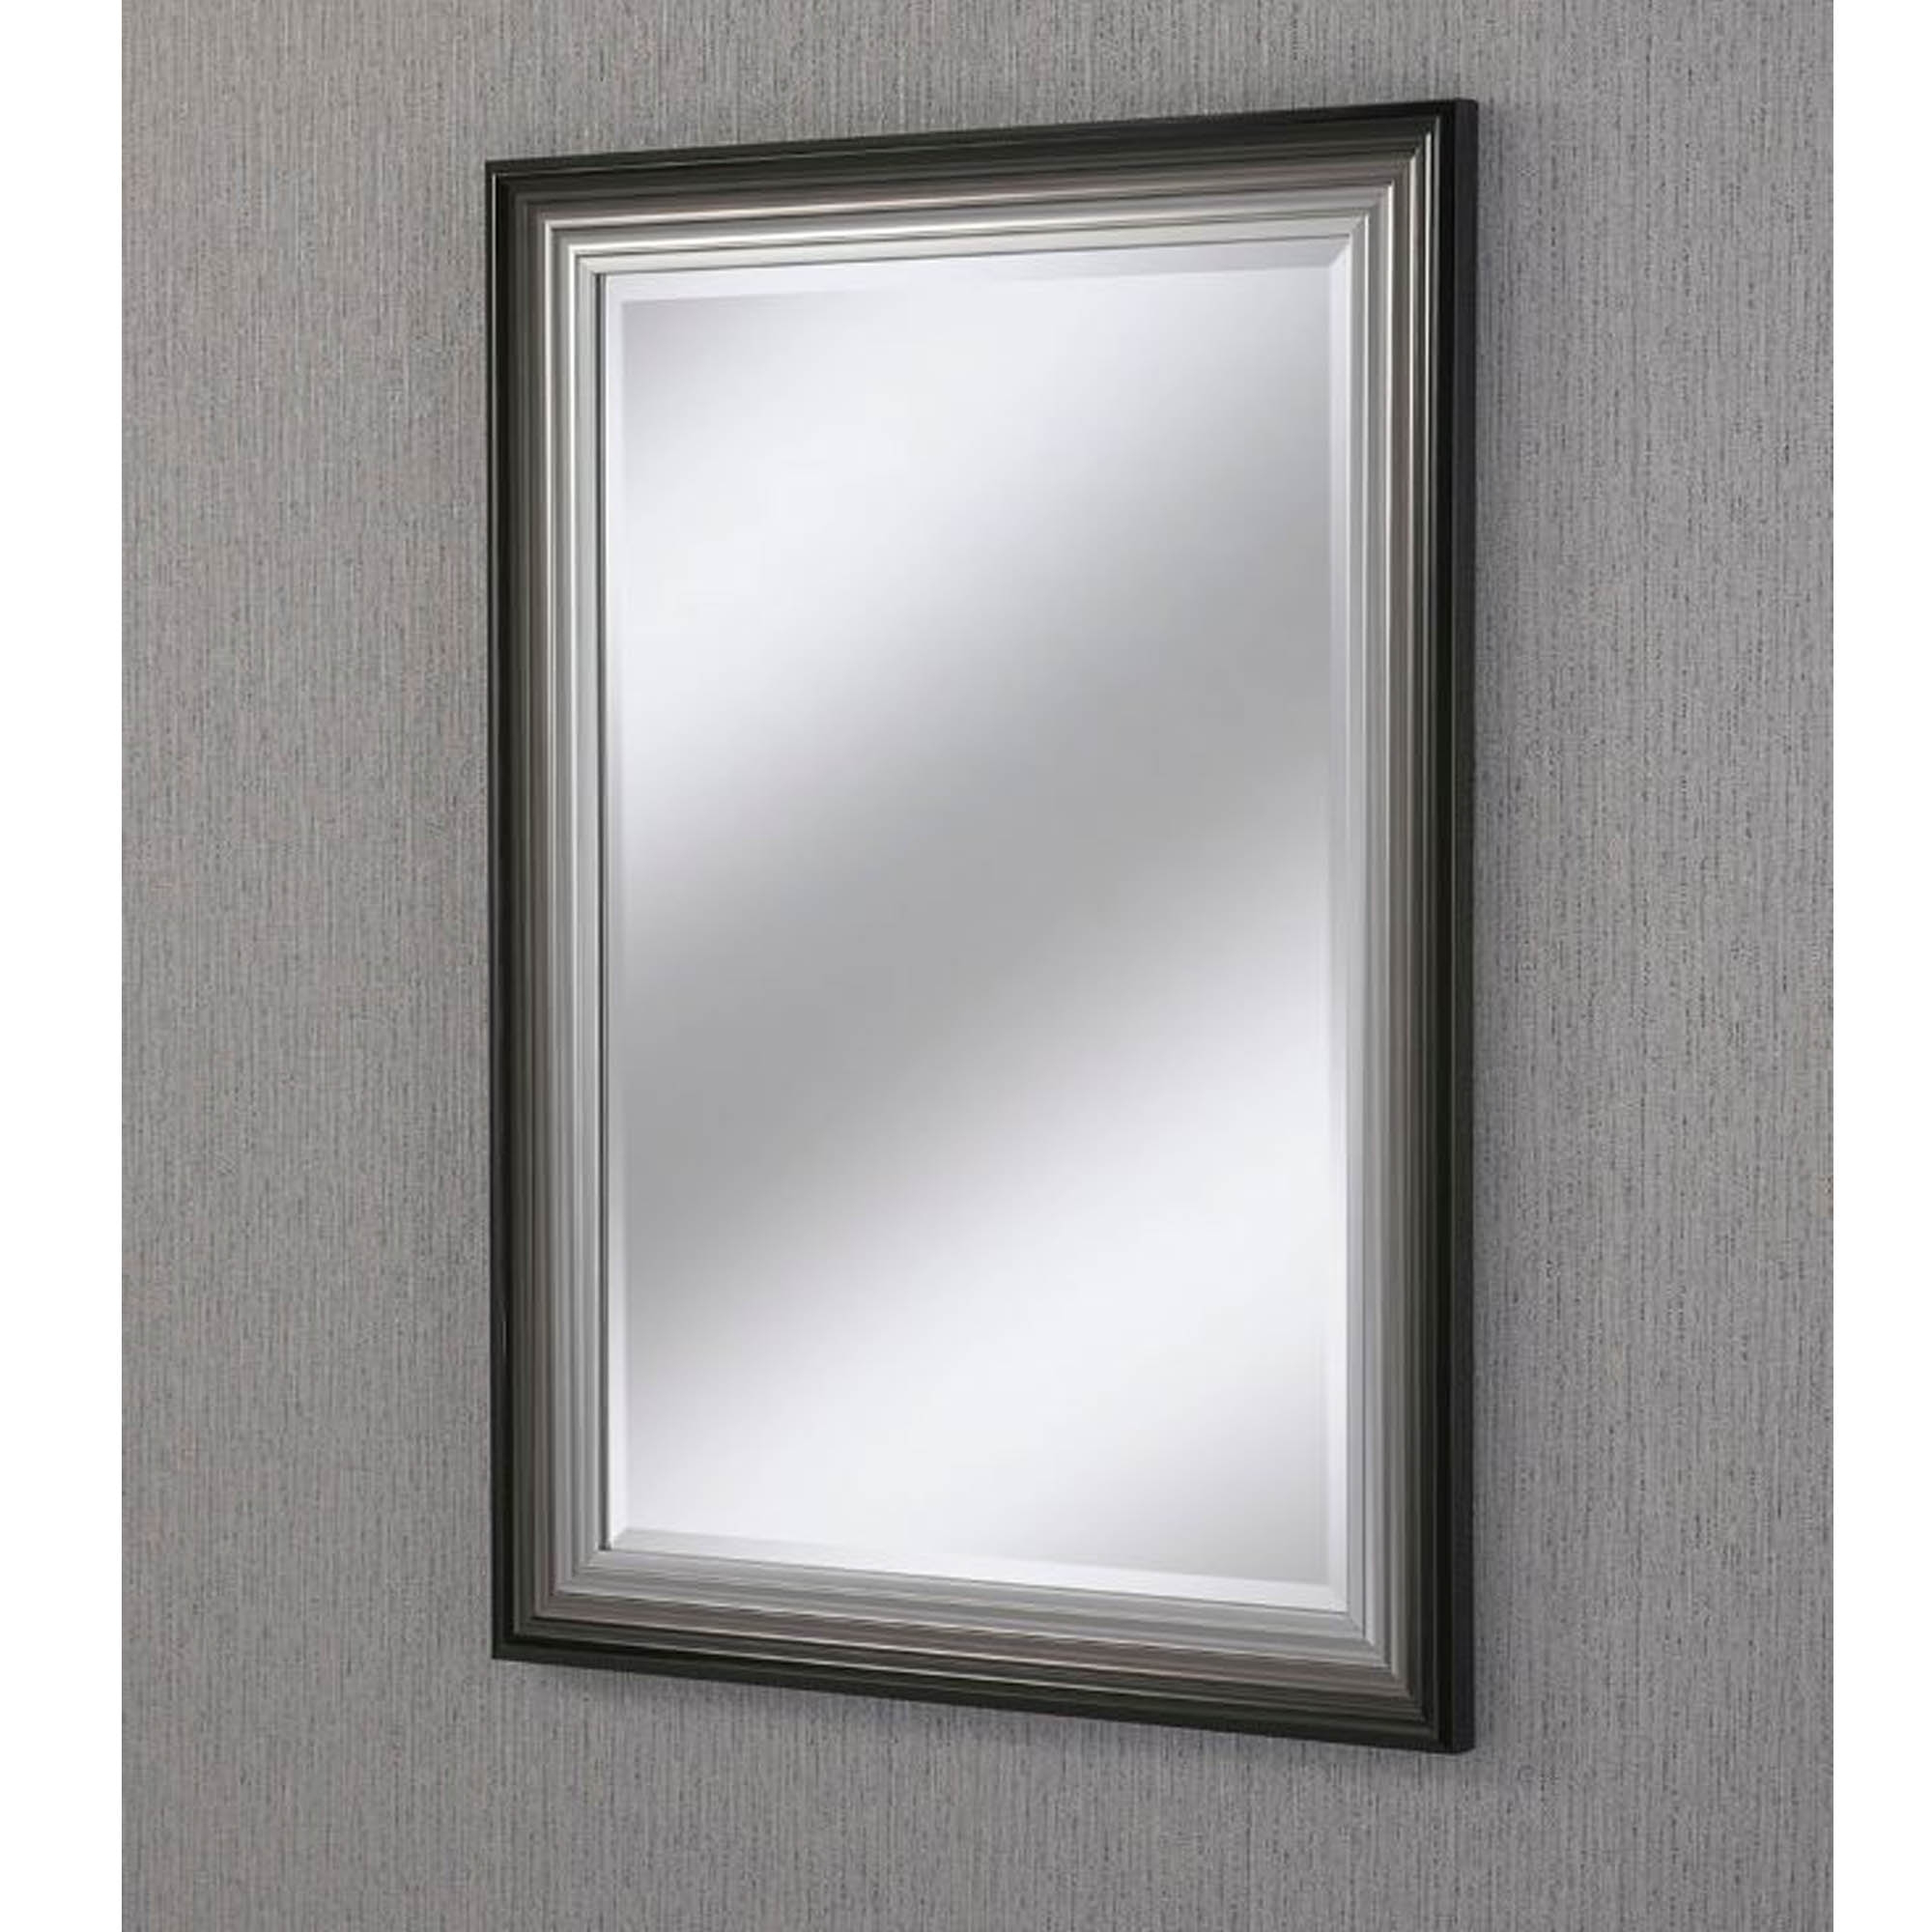 Black And Silver Wall Mirrors With Latest Rectangular Black/silver Beveled Contemporary Wall Mirror (View 1 of 20)